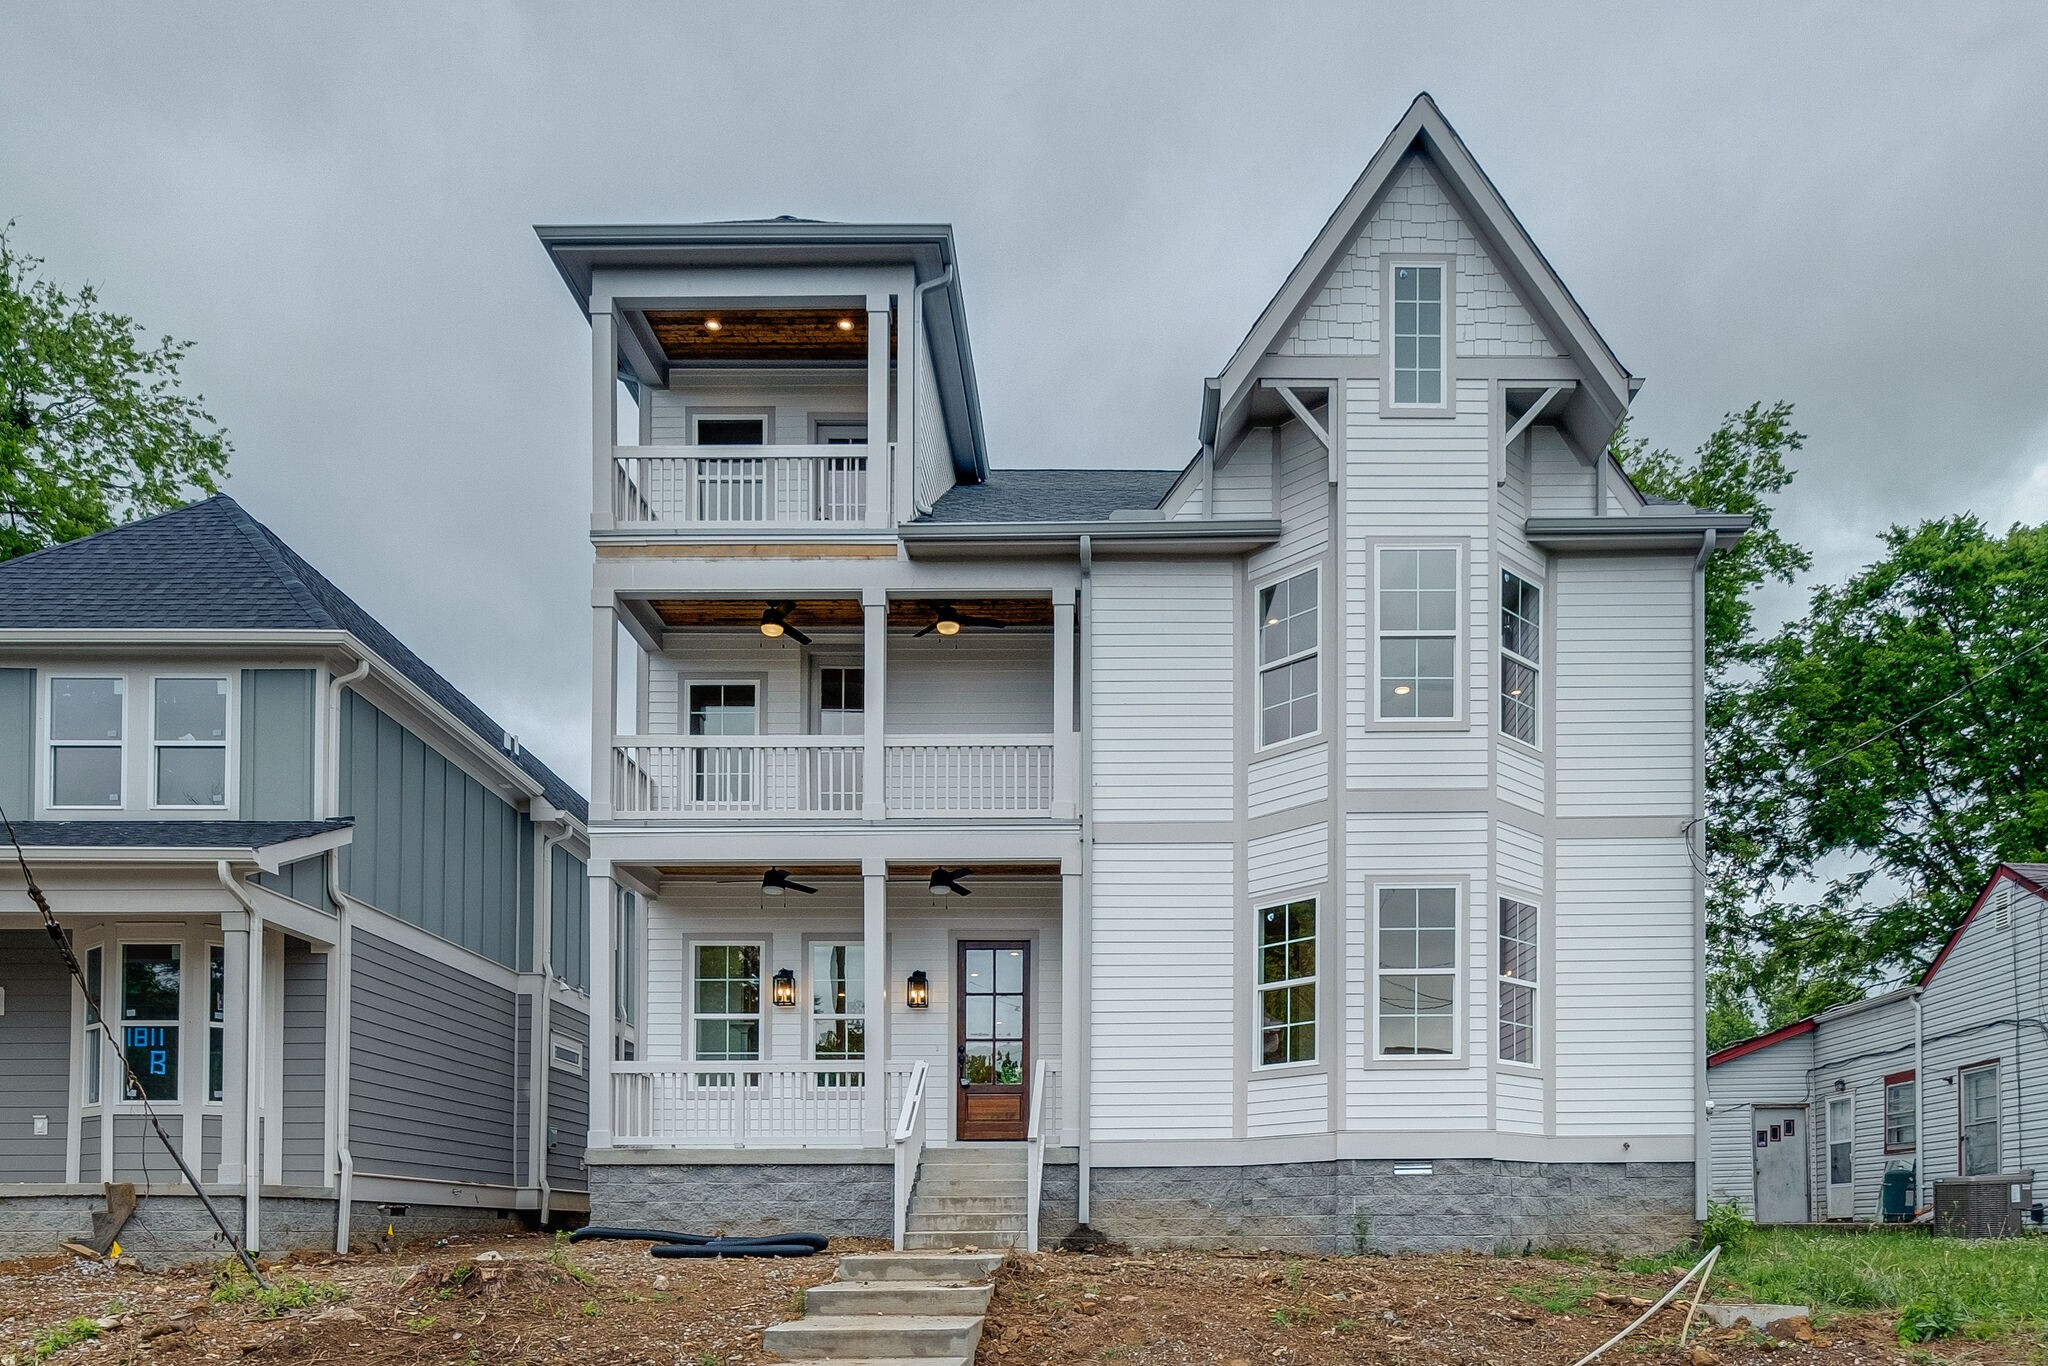 Beautiful, Modern New Construction in the Heart of East Nashville! One Block from the gorgeous views of the Cumberland River! Walk to 5 Points to Eat & Shop! 3 Stories, 5 Bdrms, 4 Decks/Patios! Chef's Kitchen open to living area! Great space for entertaining! Designer Tile, Fixtures, & Finishes!  New 2 car garage w/alley access. Buyer to verify All pertinent info. Agent related to seller.